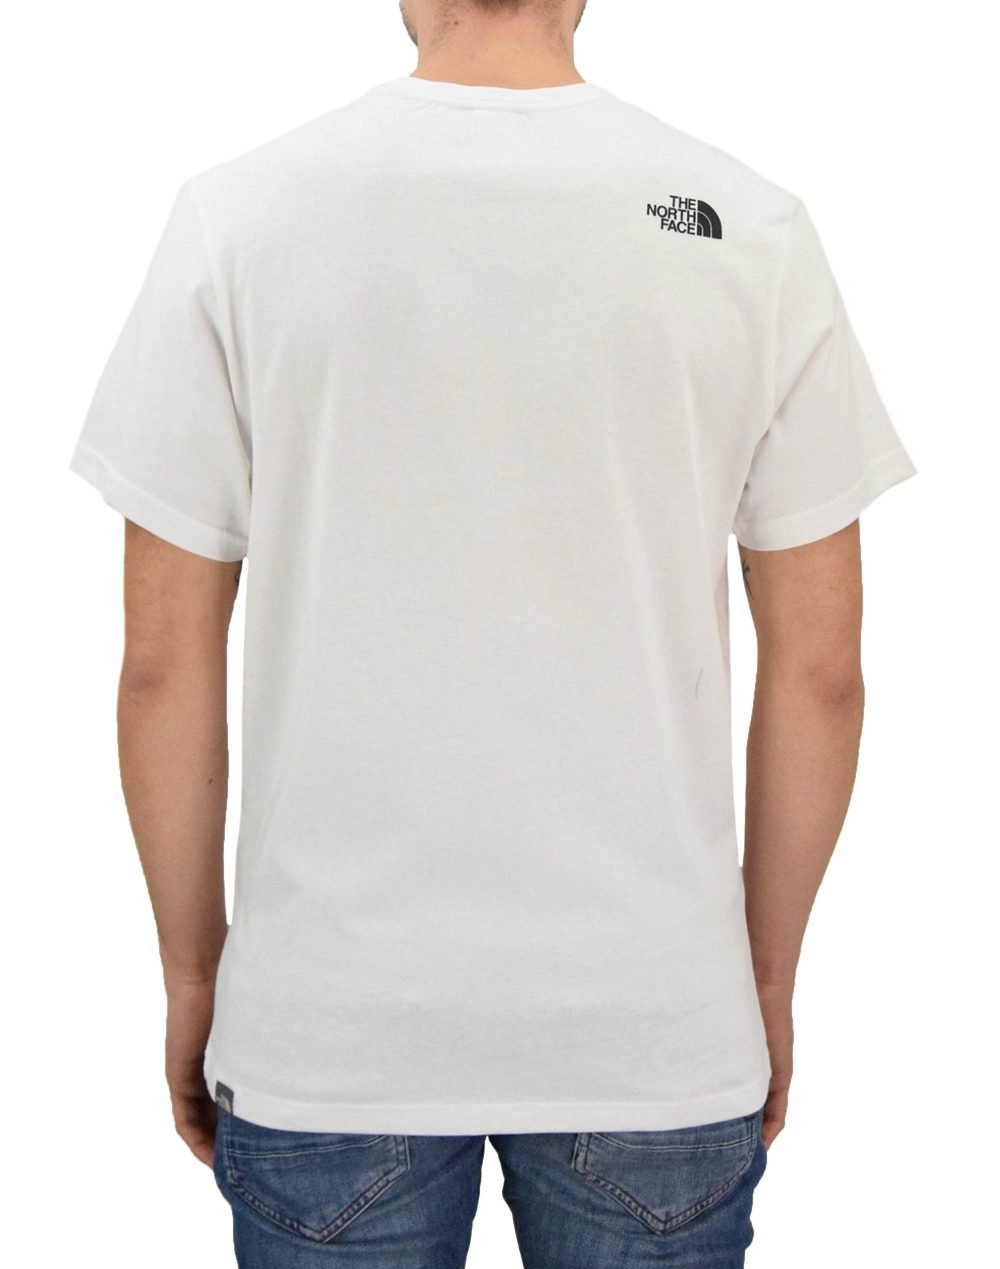 The North Face Never Stop Exploring Tee (NF0A2TX4LB11) White/Red